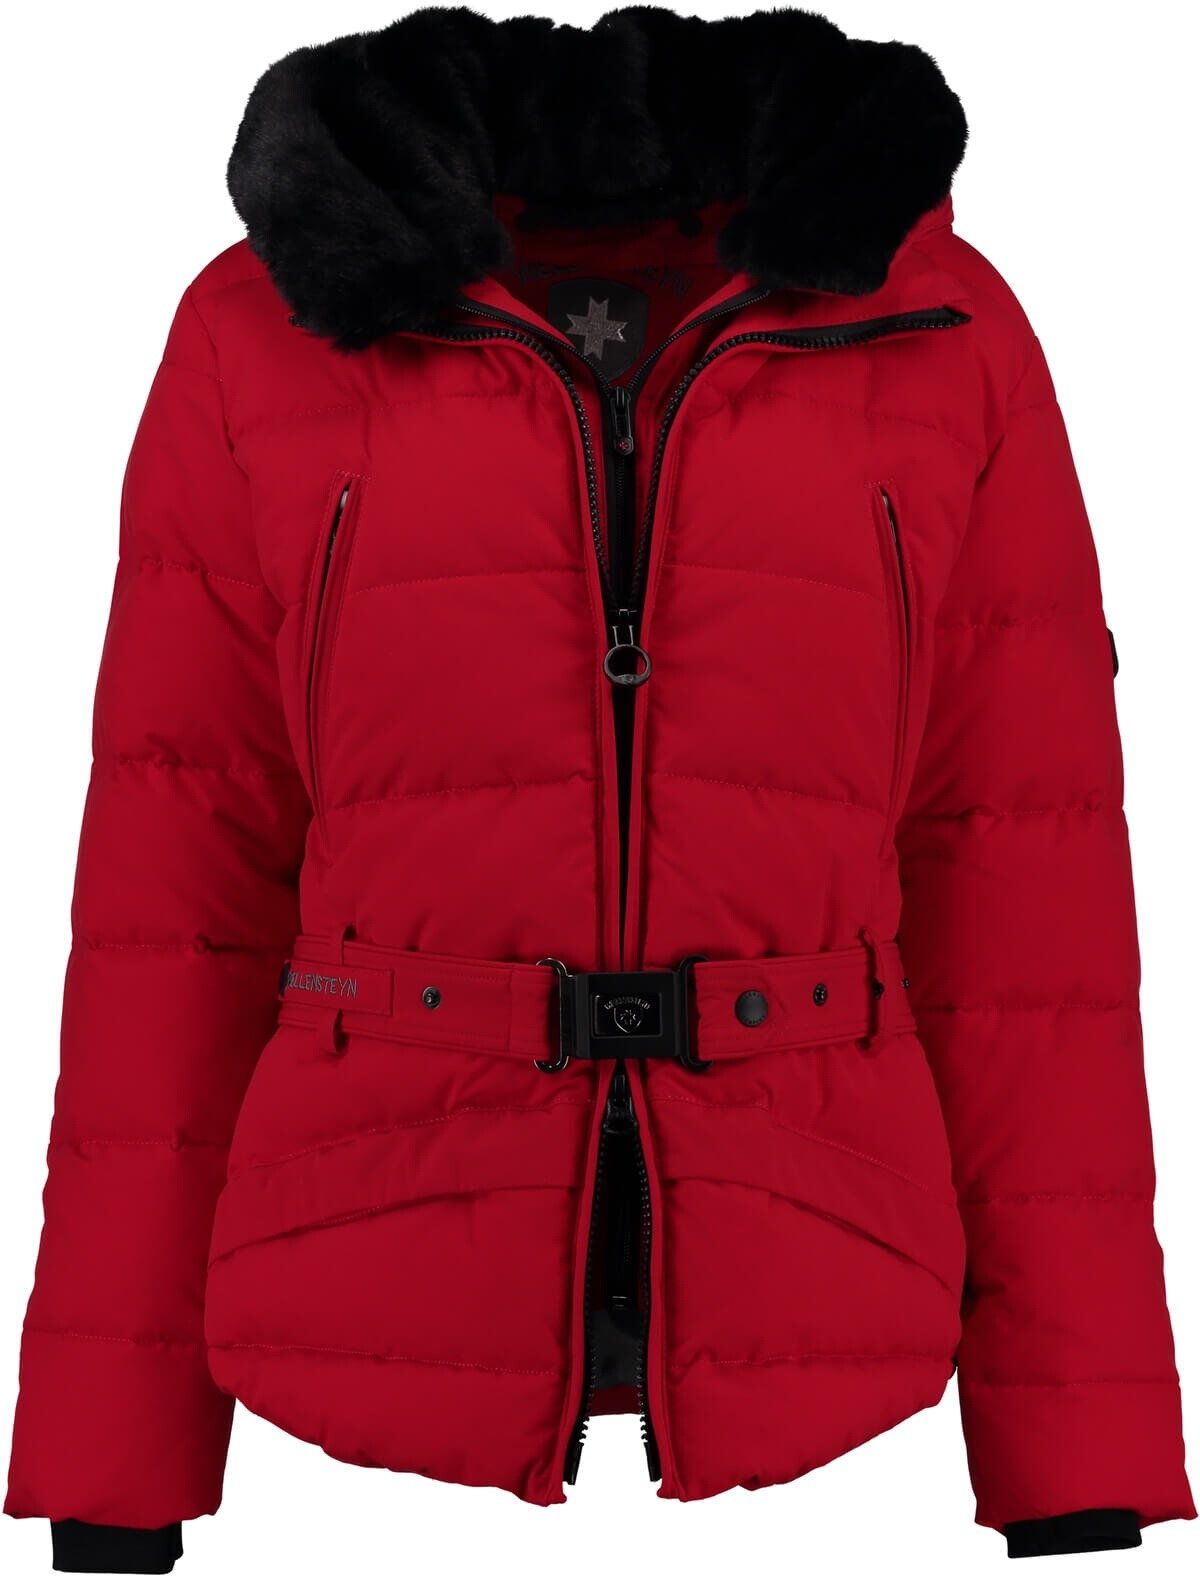 shop hot sale fast delivery Wellensteyn Winter Jacke Mayfair red